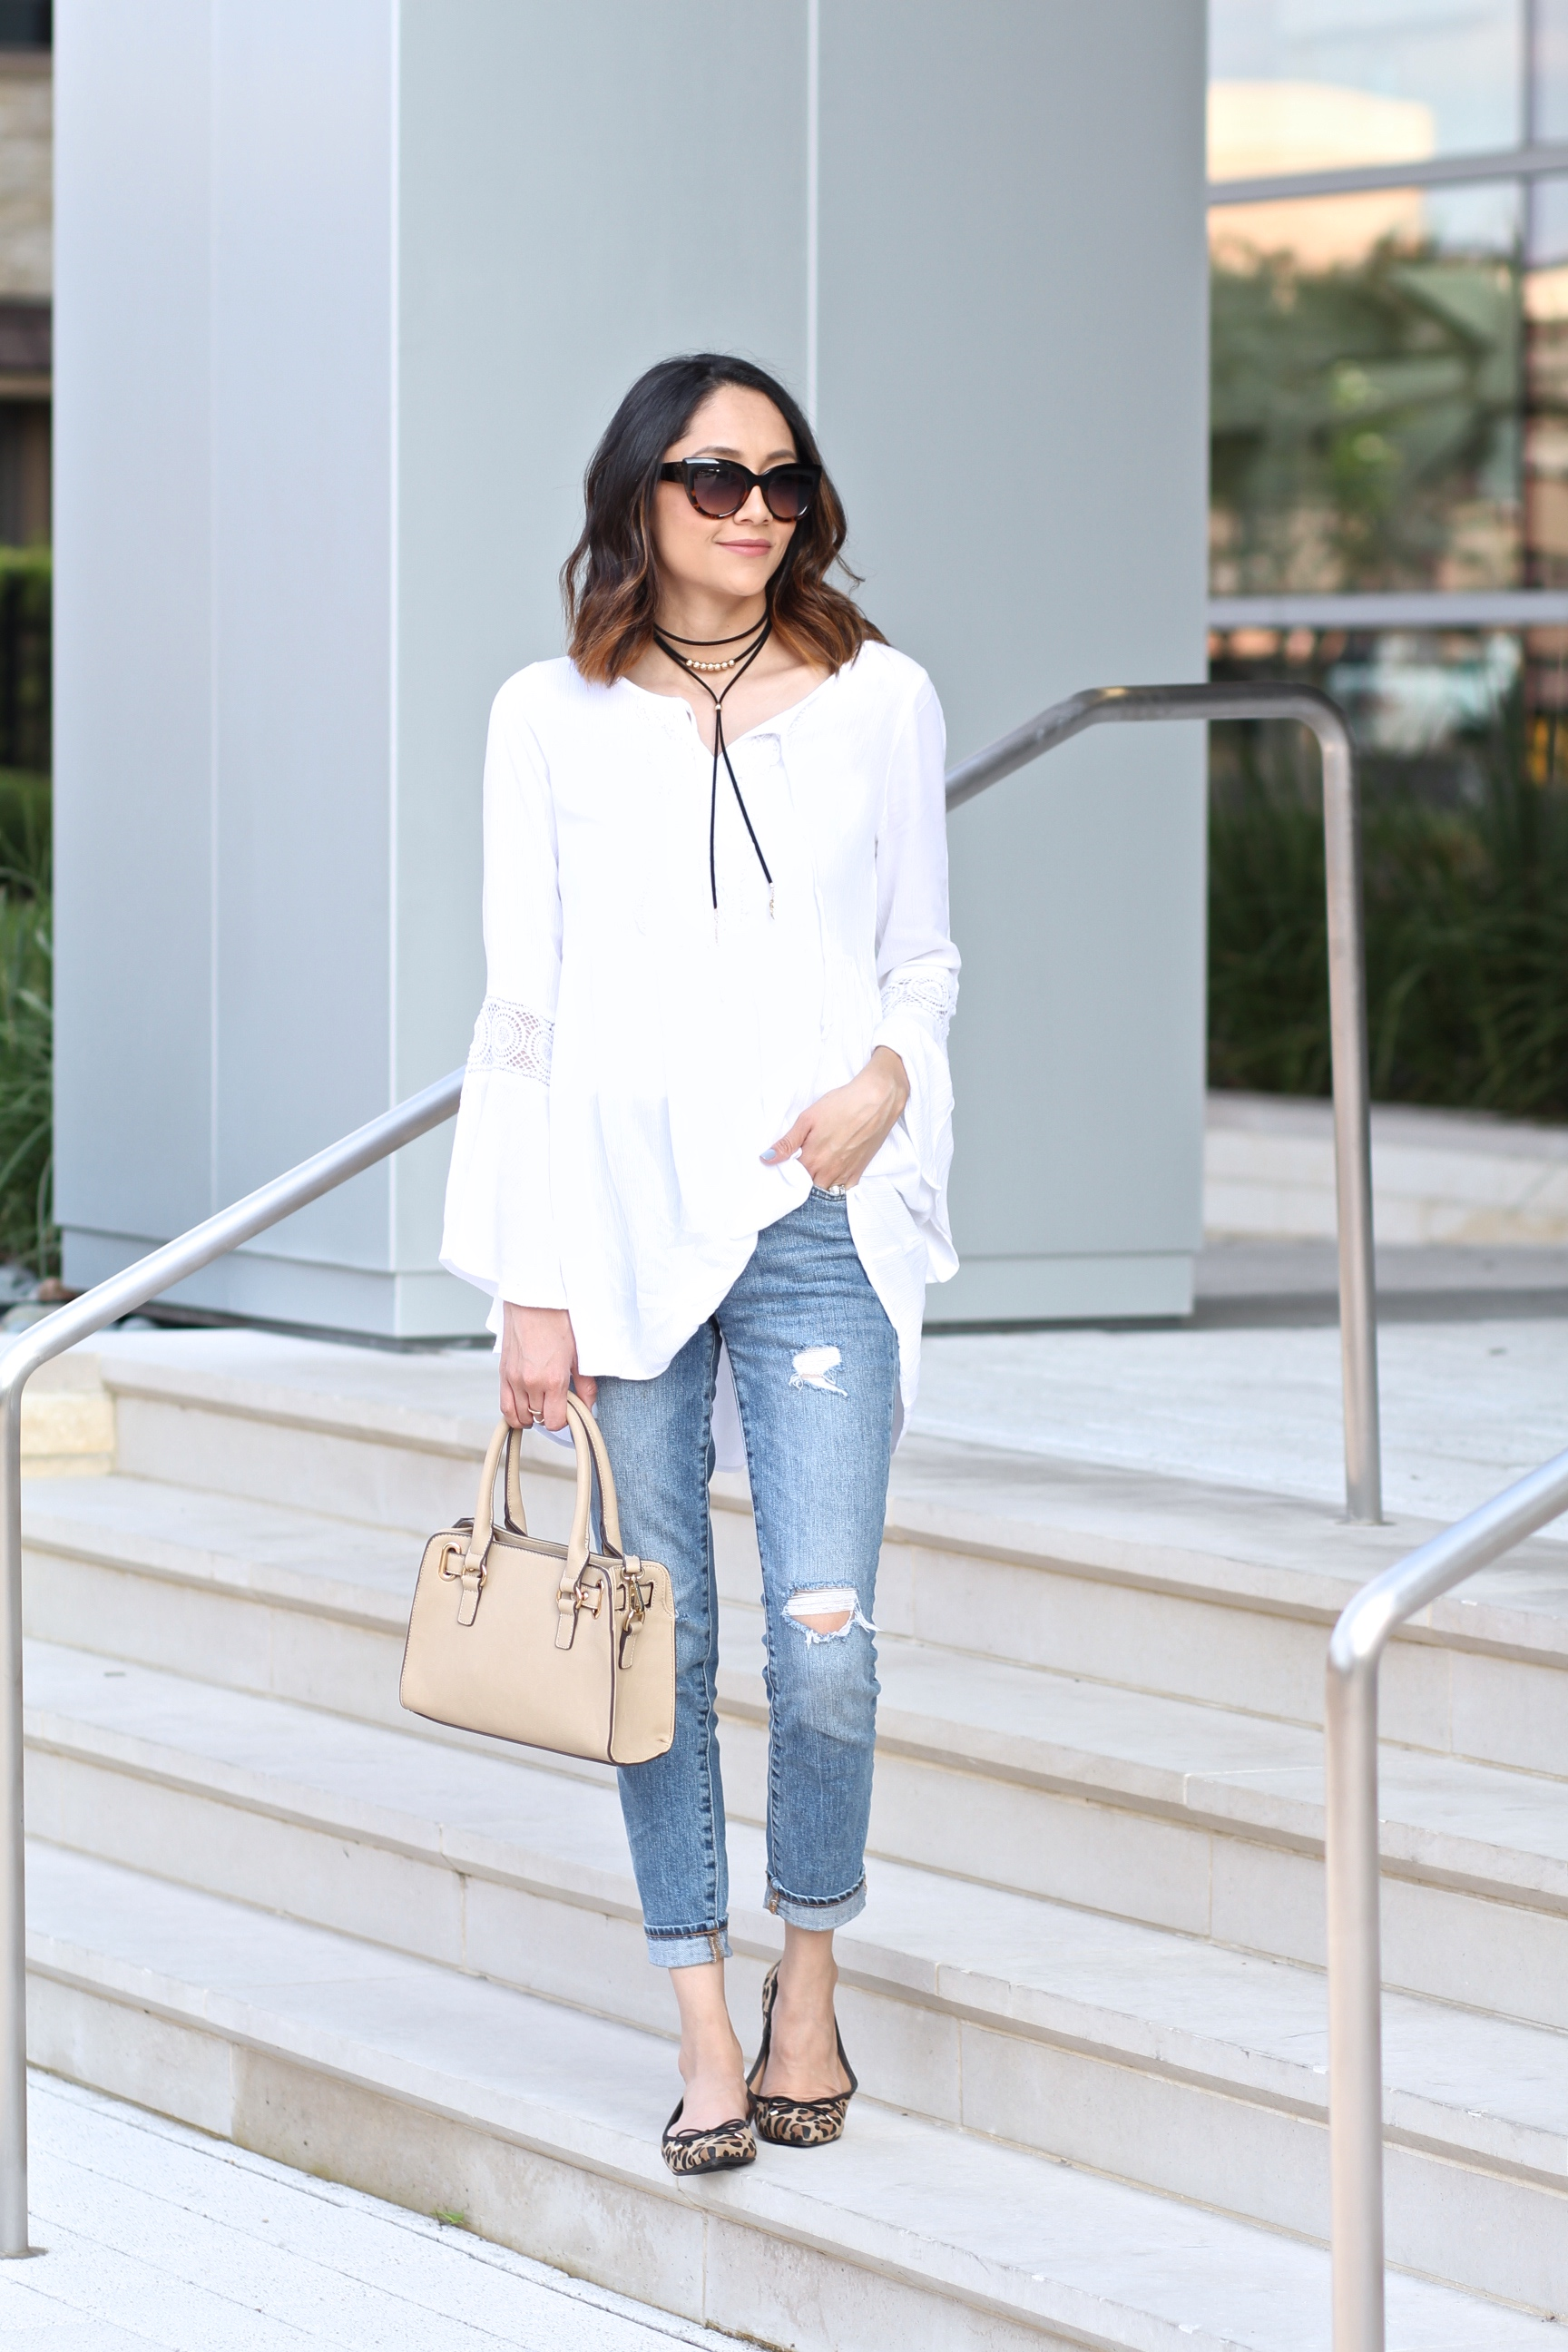 A casual weekend look under $100